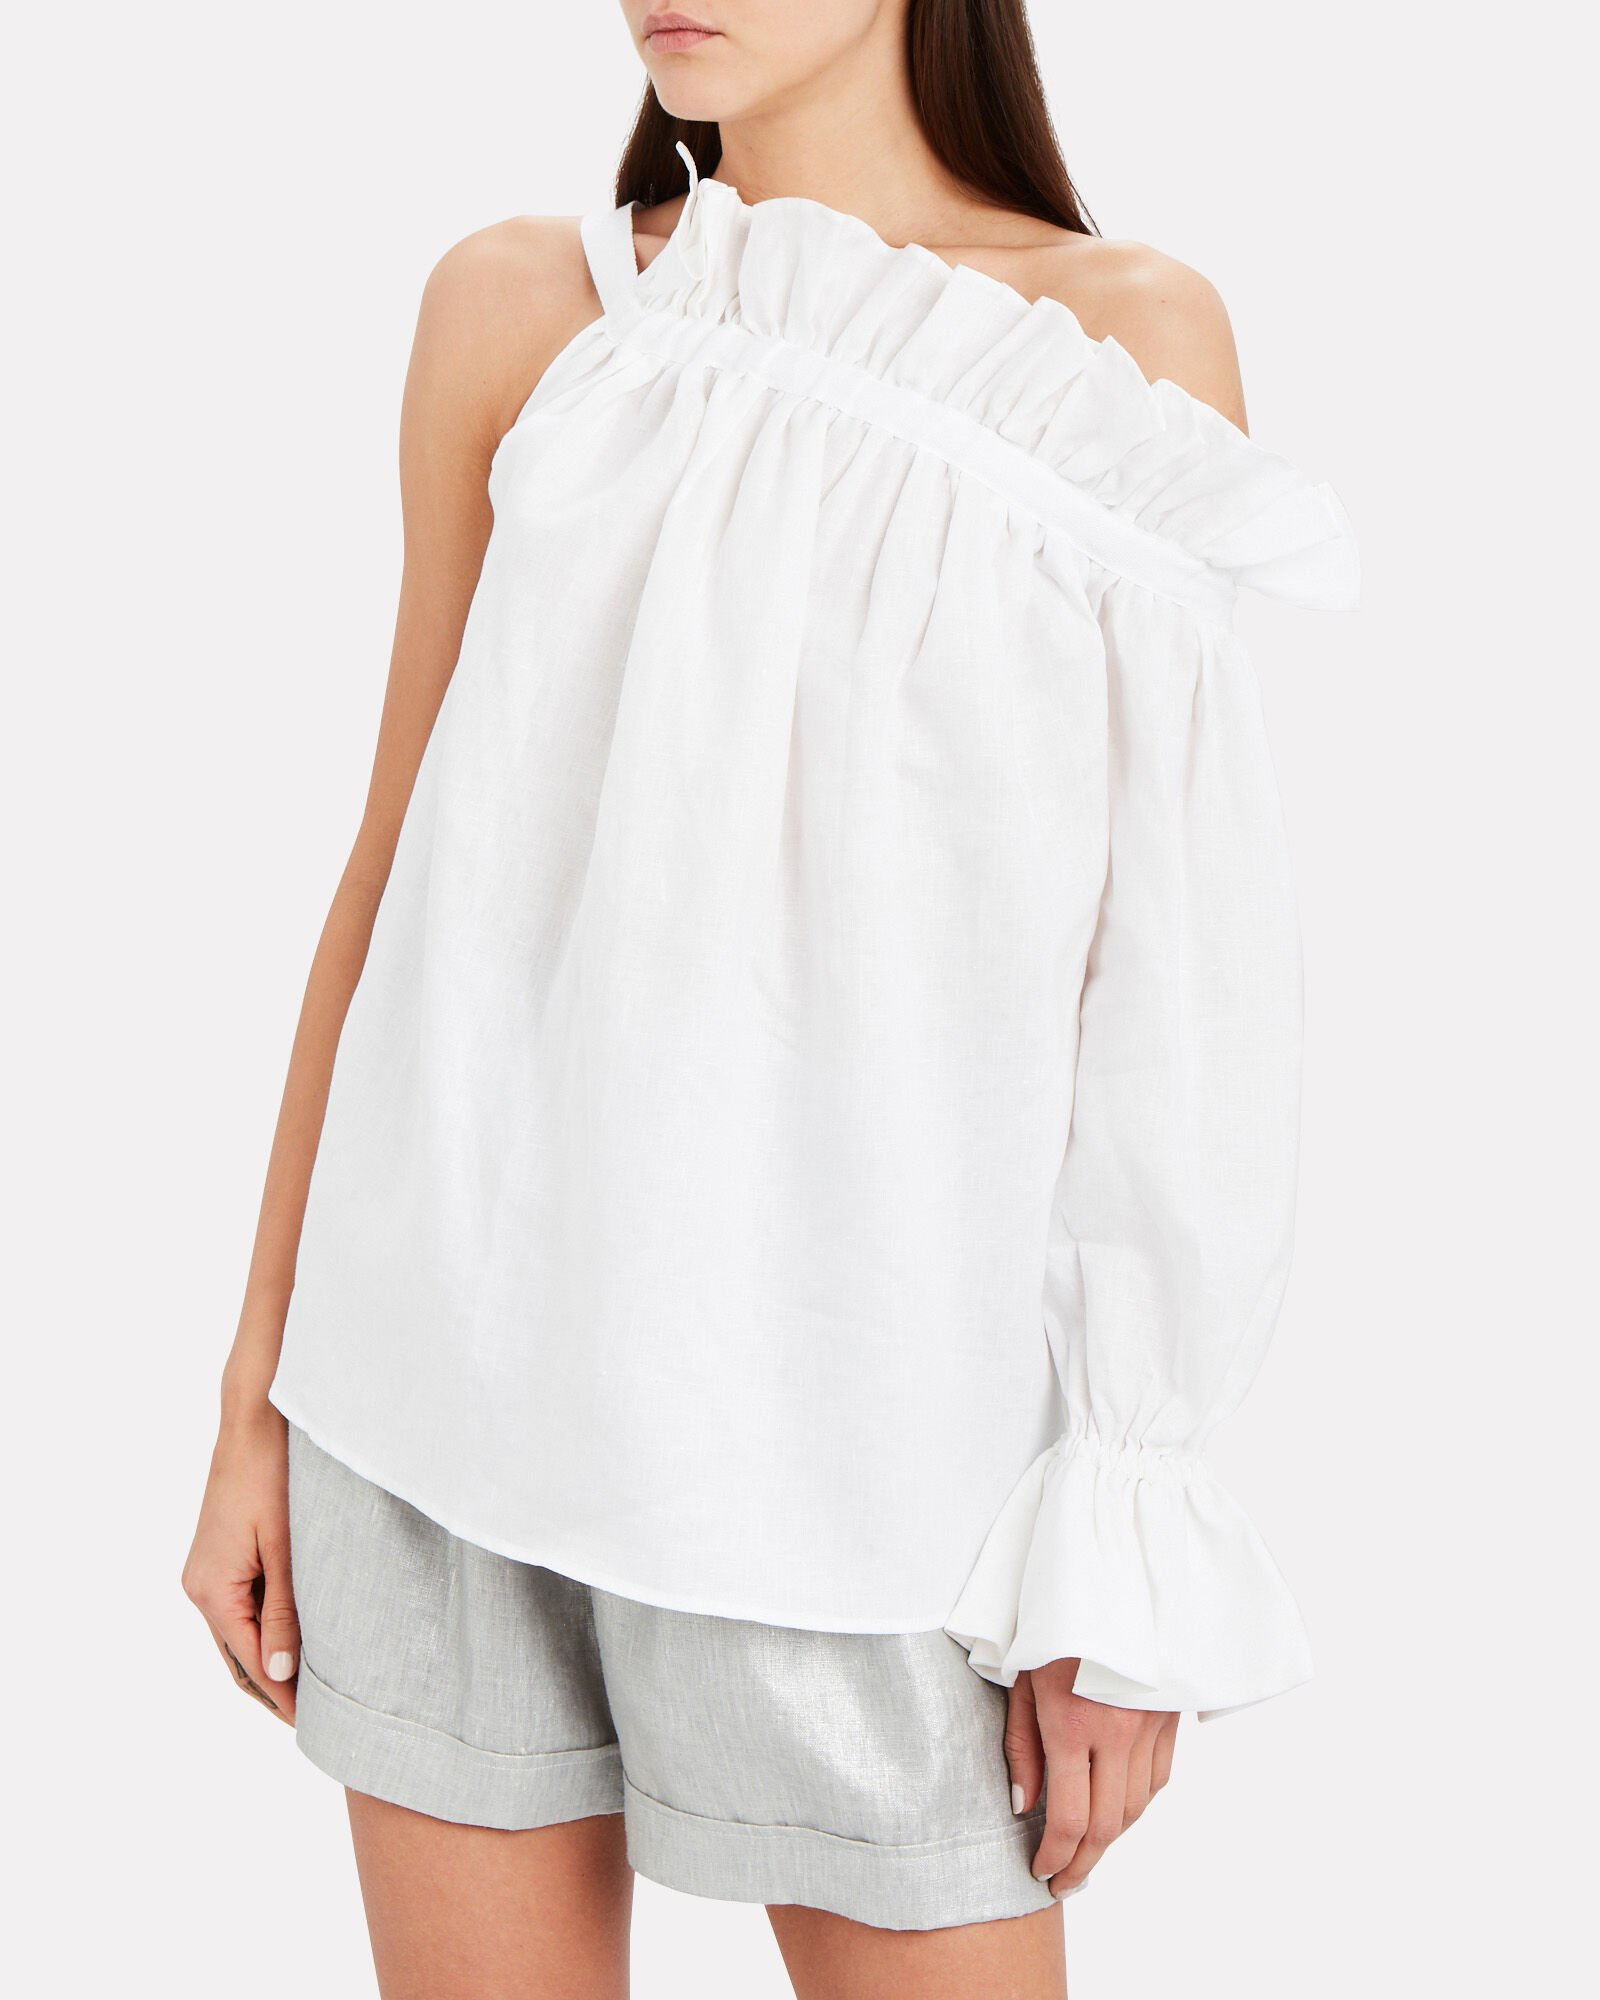 Operato Linen One-Shoulder Blouse, WHITE, hi-res